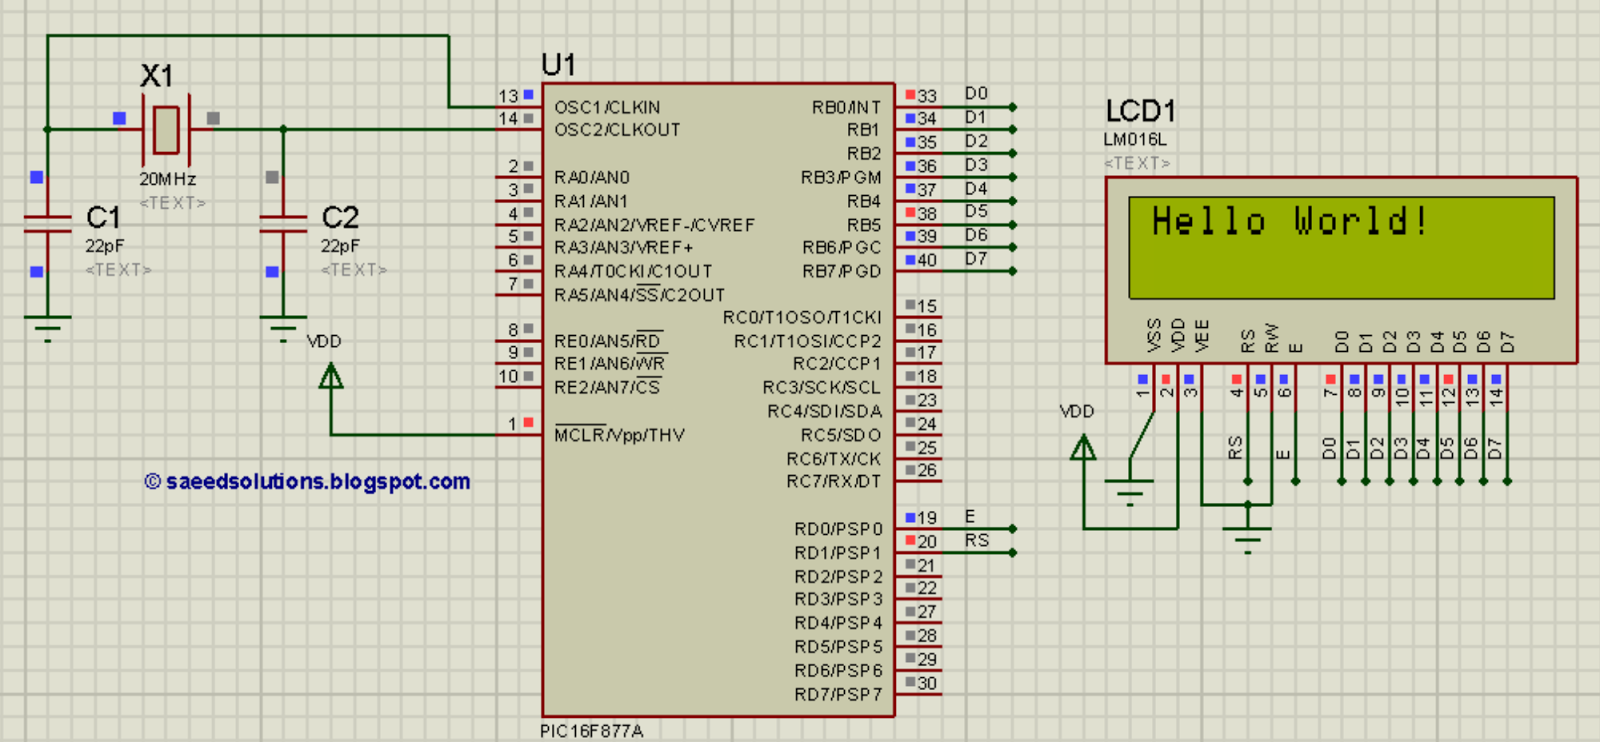 pic16f877a lcd interfacing code in 8bit mode proteus simulation rh saeedsolutions blogspot com